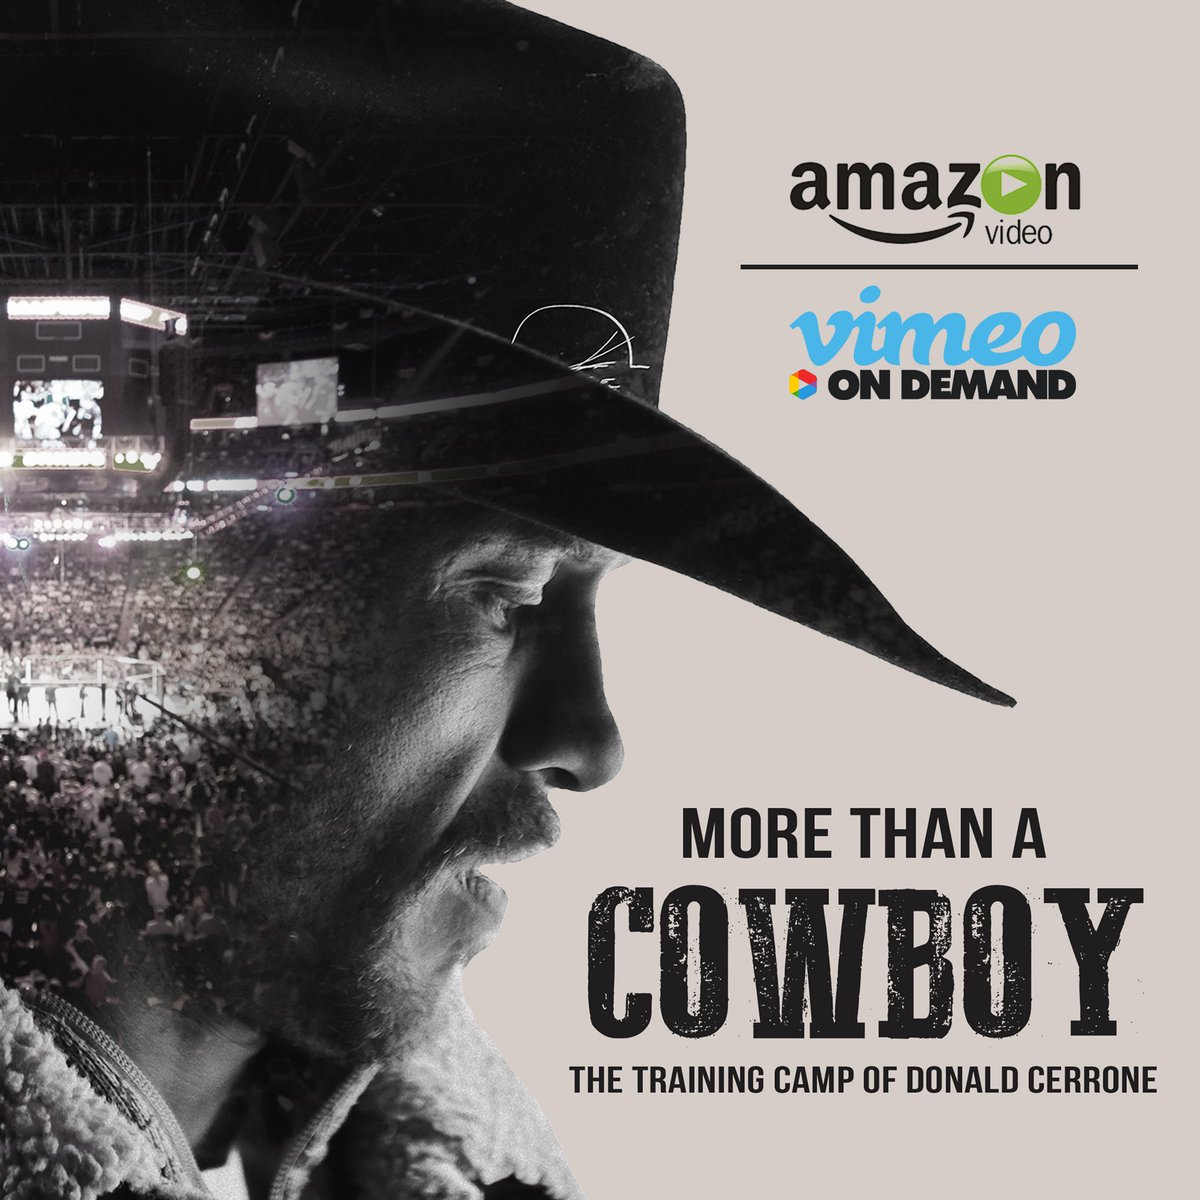 Check out @Cowboycerrone doc series showing the lead up to his fight with Conor. It's available on Amazon Video and Vimeo On Demand. Watched the first episode it was bad ass. https://t.co/iR6uppQWOy